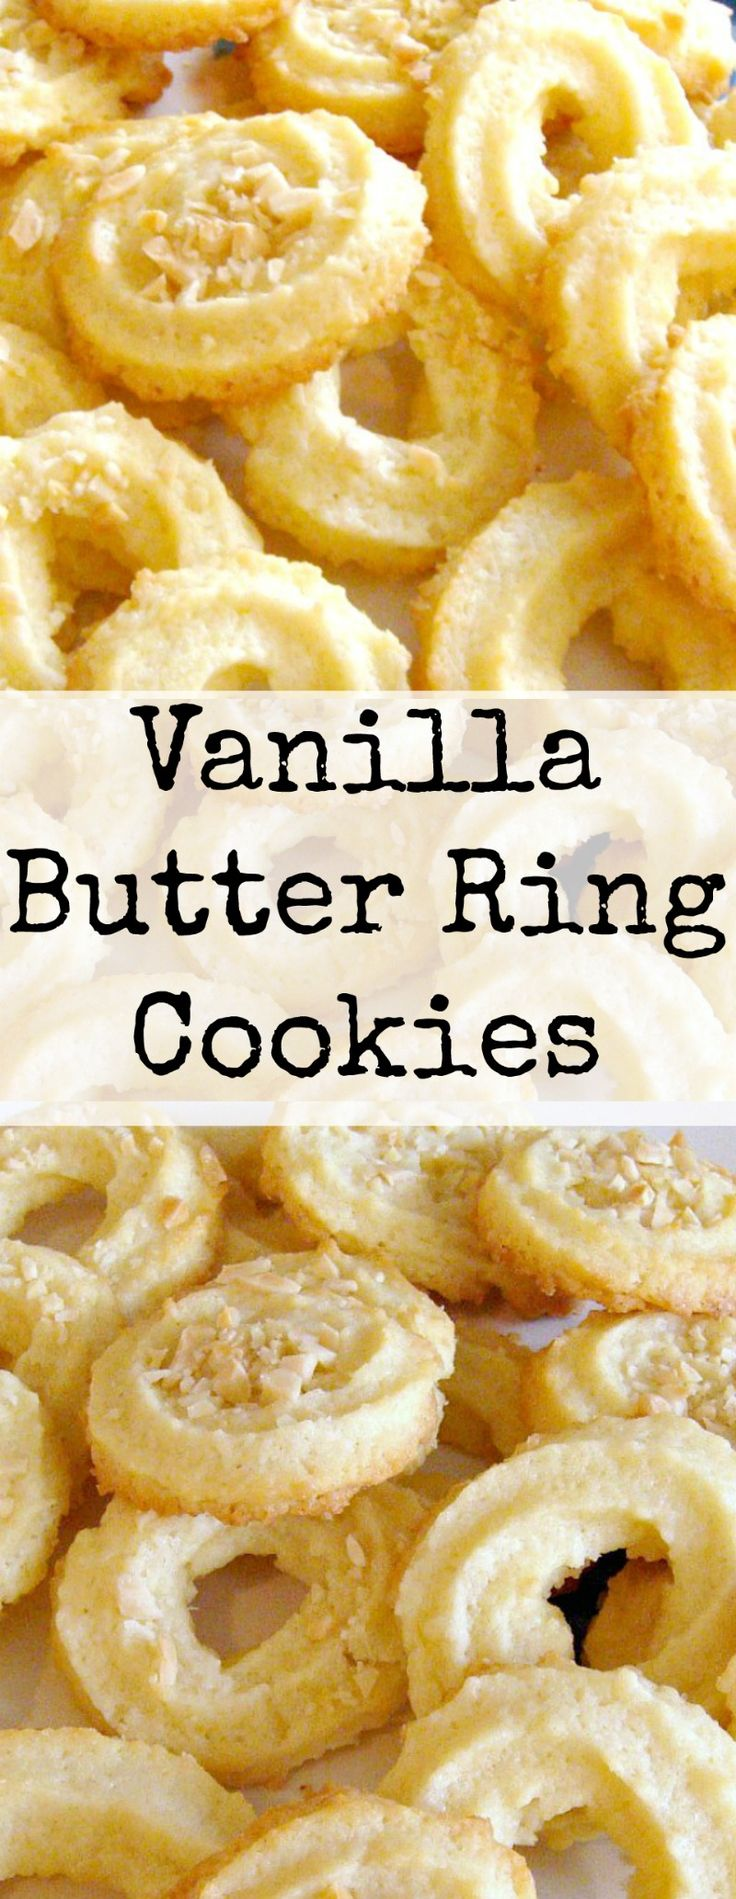 Vanilla Butter Ring Cookies. These little cookies have a wonderful vanilla…